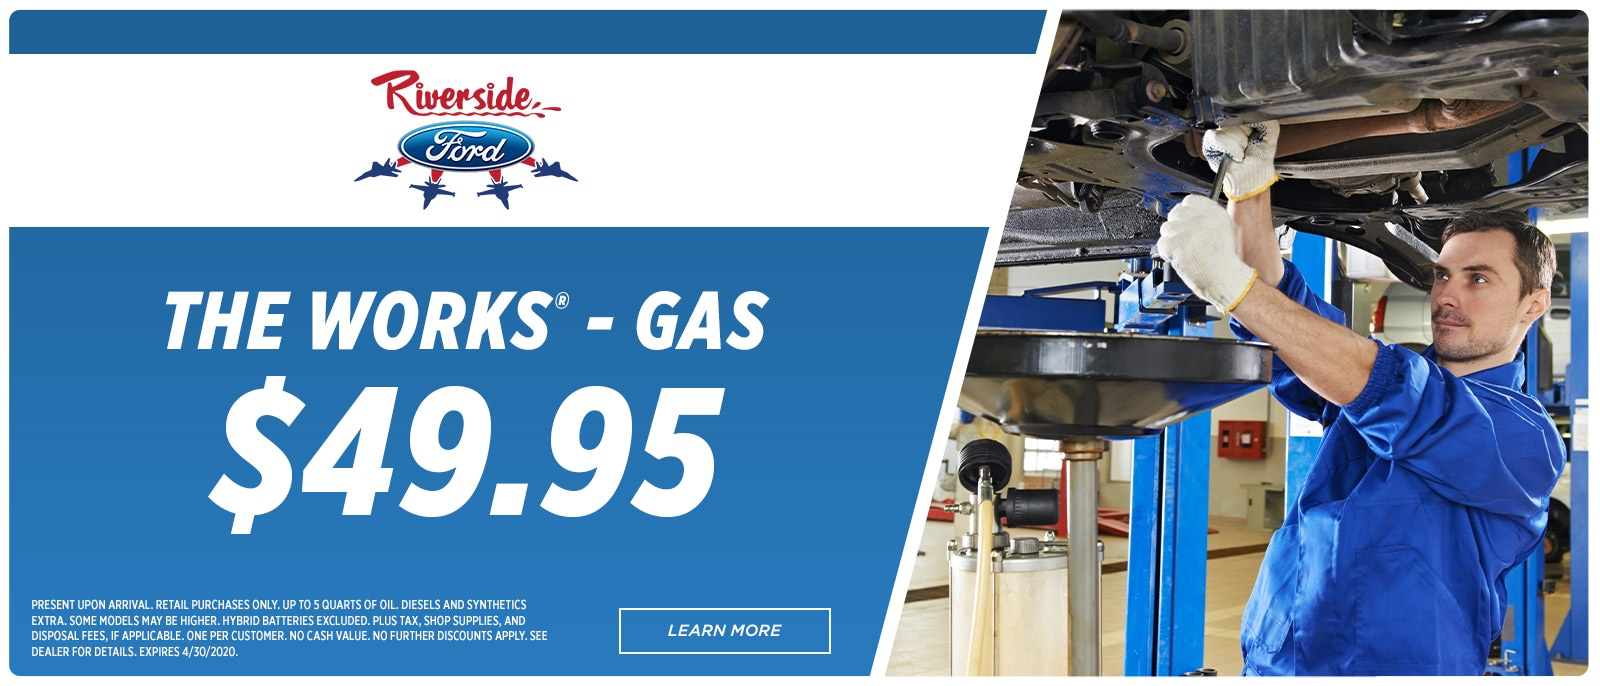 Riverside Ford Service-1600x686 - Walk In Oil Change The Works | Havelock, NC